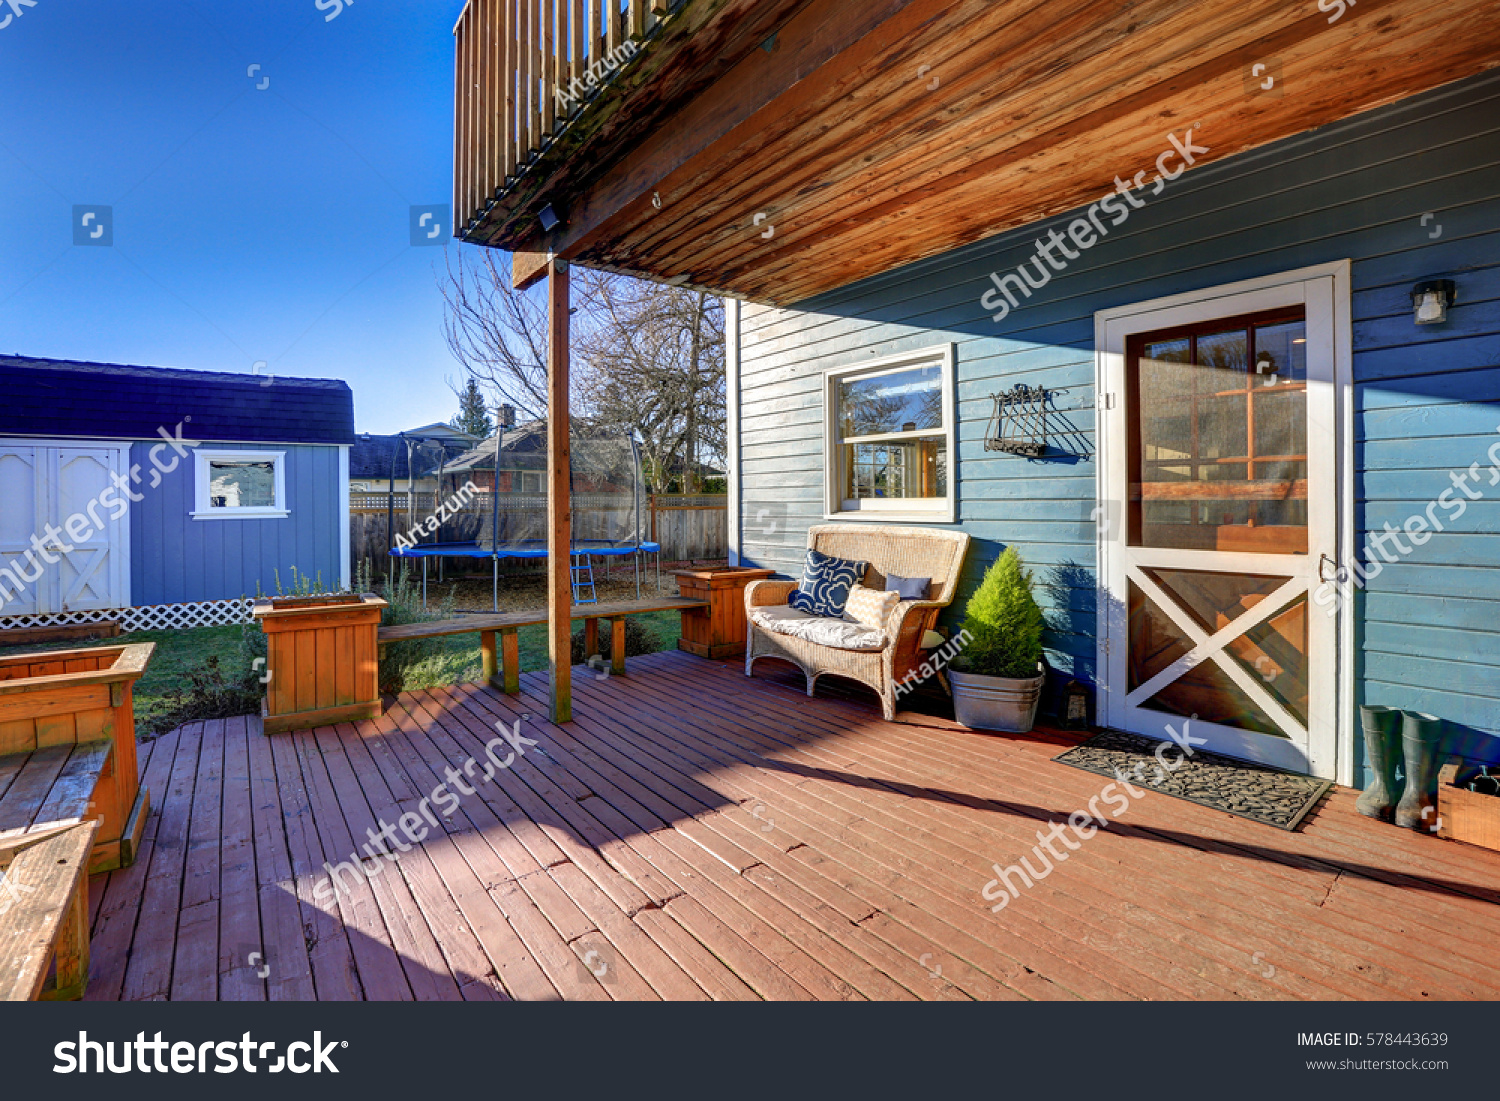 Covered front porch craftsman style home royalty free stock image - Exterior Of Blue Craftsman House With Covered Back Porch Fitted With Nice Wicker Bench Wooden